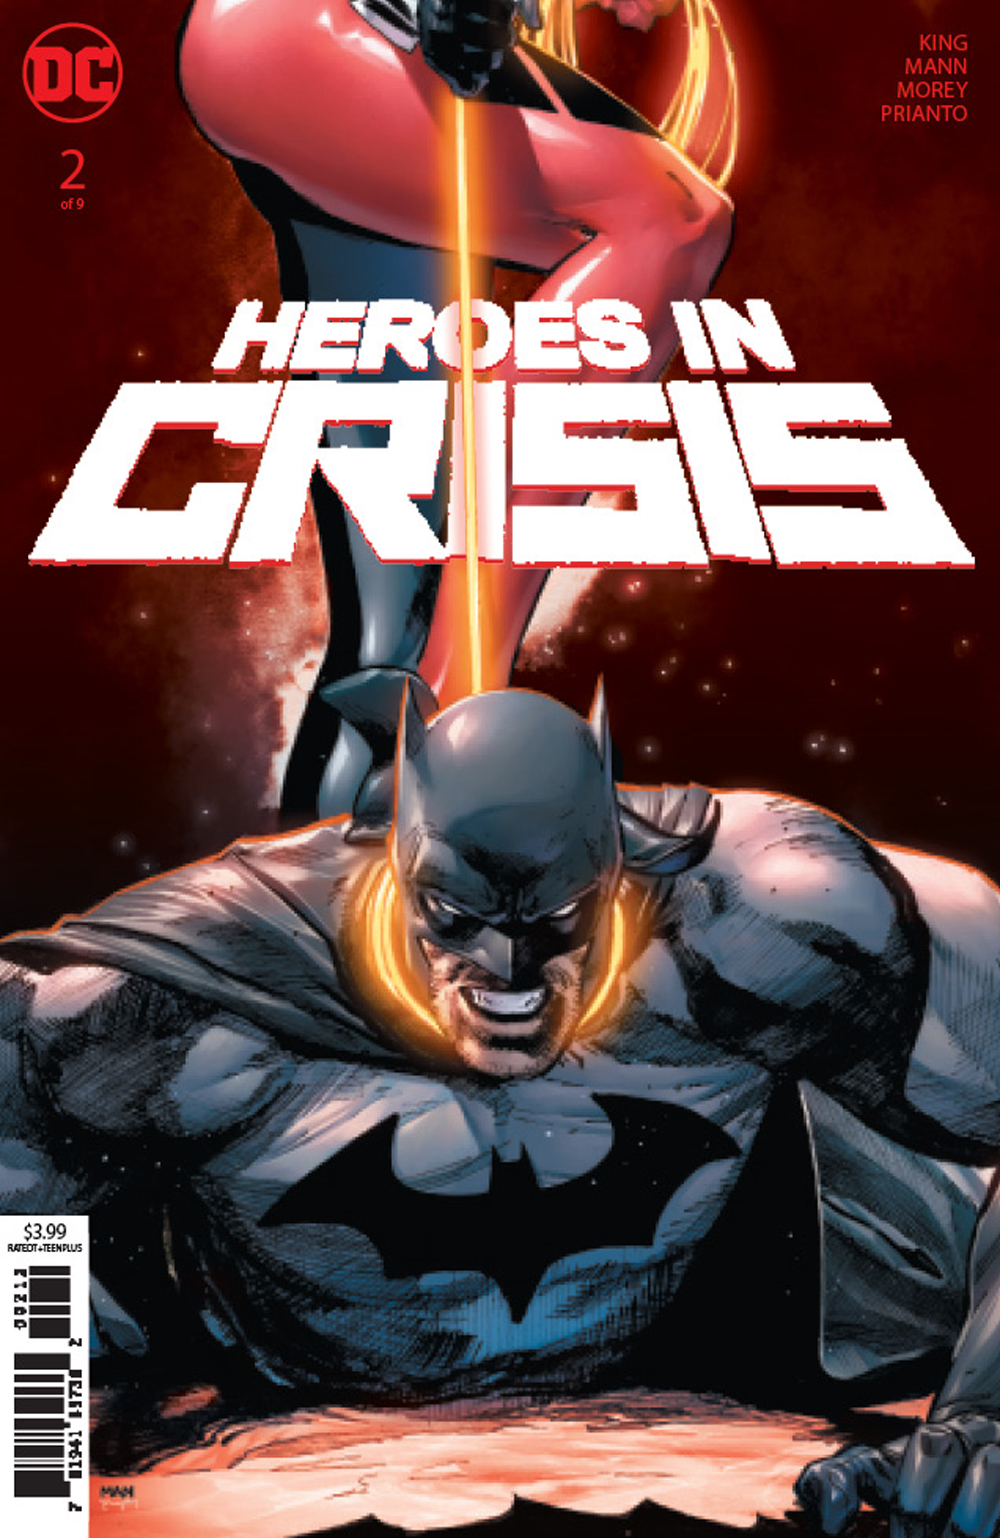 HEROES IN CRISIS #2 (OF 9) 2ND PTG